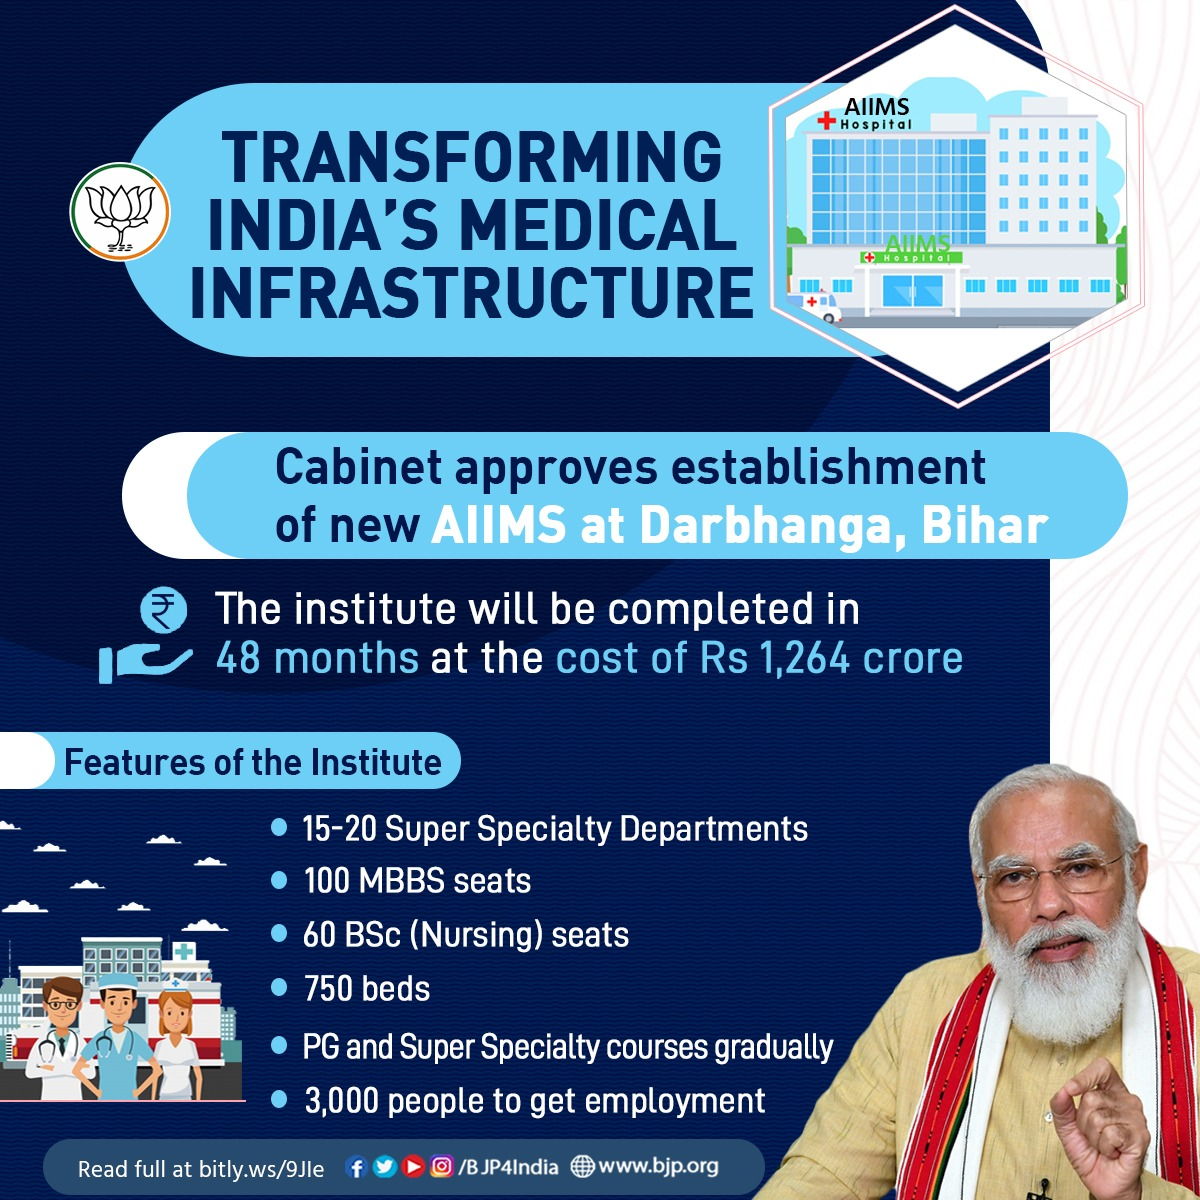 Cabinet approves establishment of new AIIMS at Darbhanga, Bihar with the cost of Rs 1,264 crore. This will not only transform health education and training but also address the shortfall of health care professionals in the region. #TransformingUrbanBihar